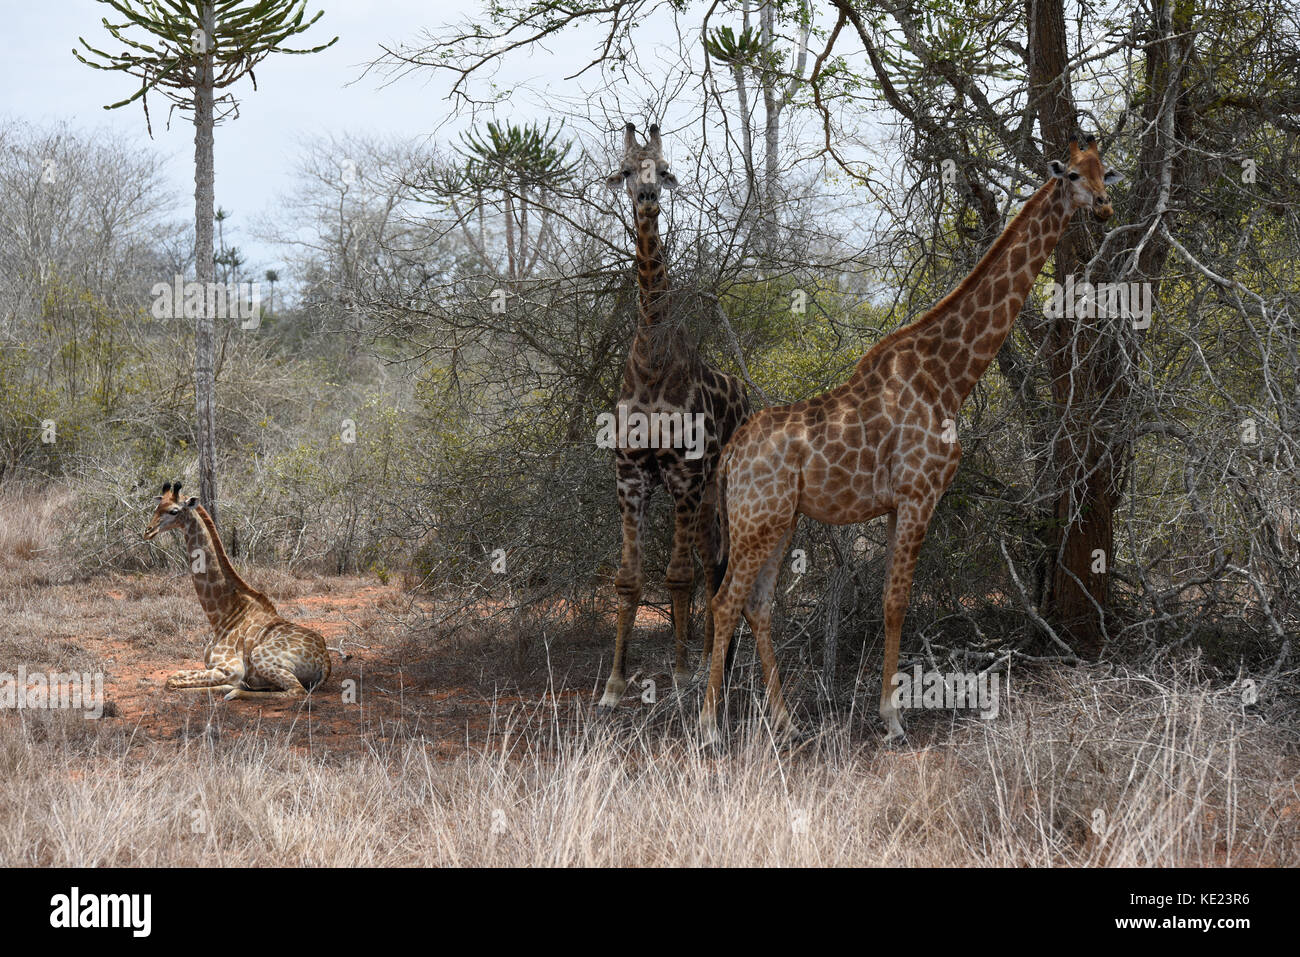 Angolan National Park south of Luanda - Stock Image